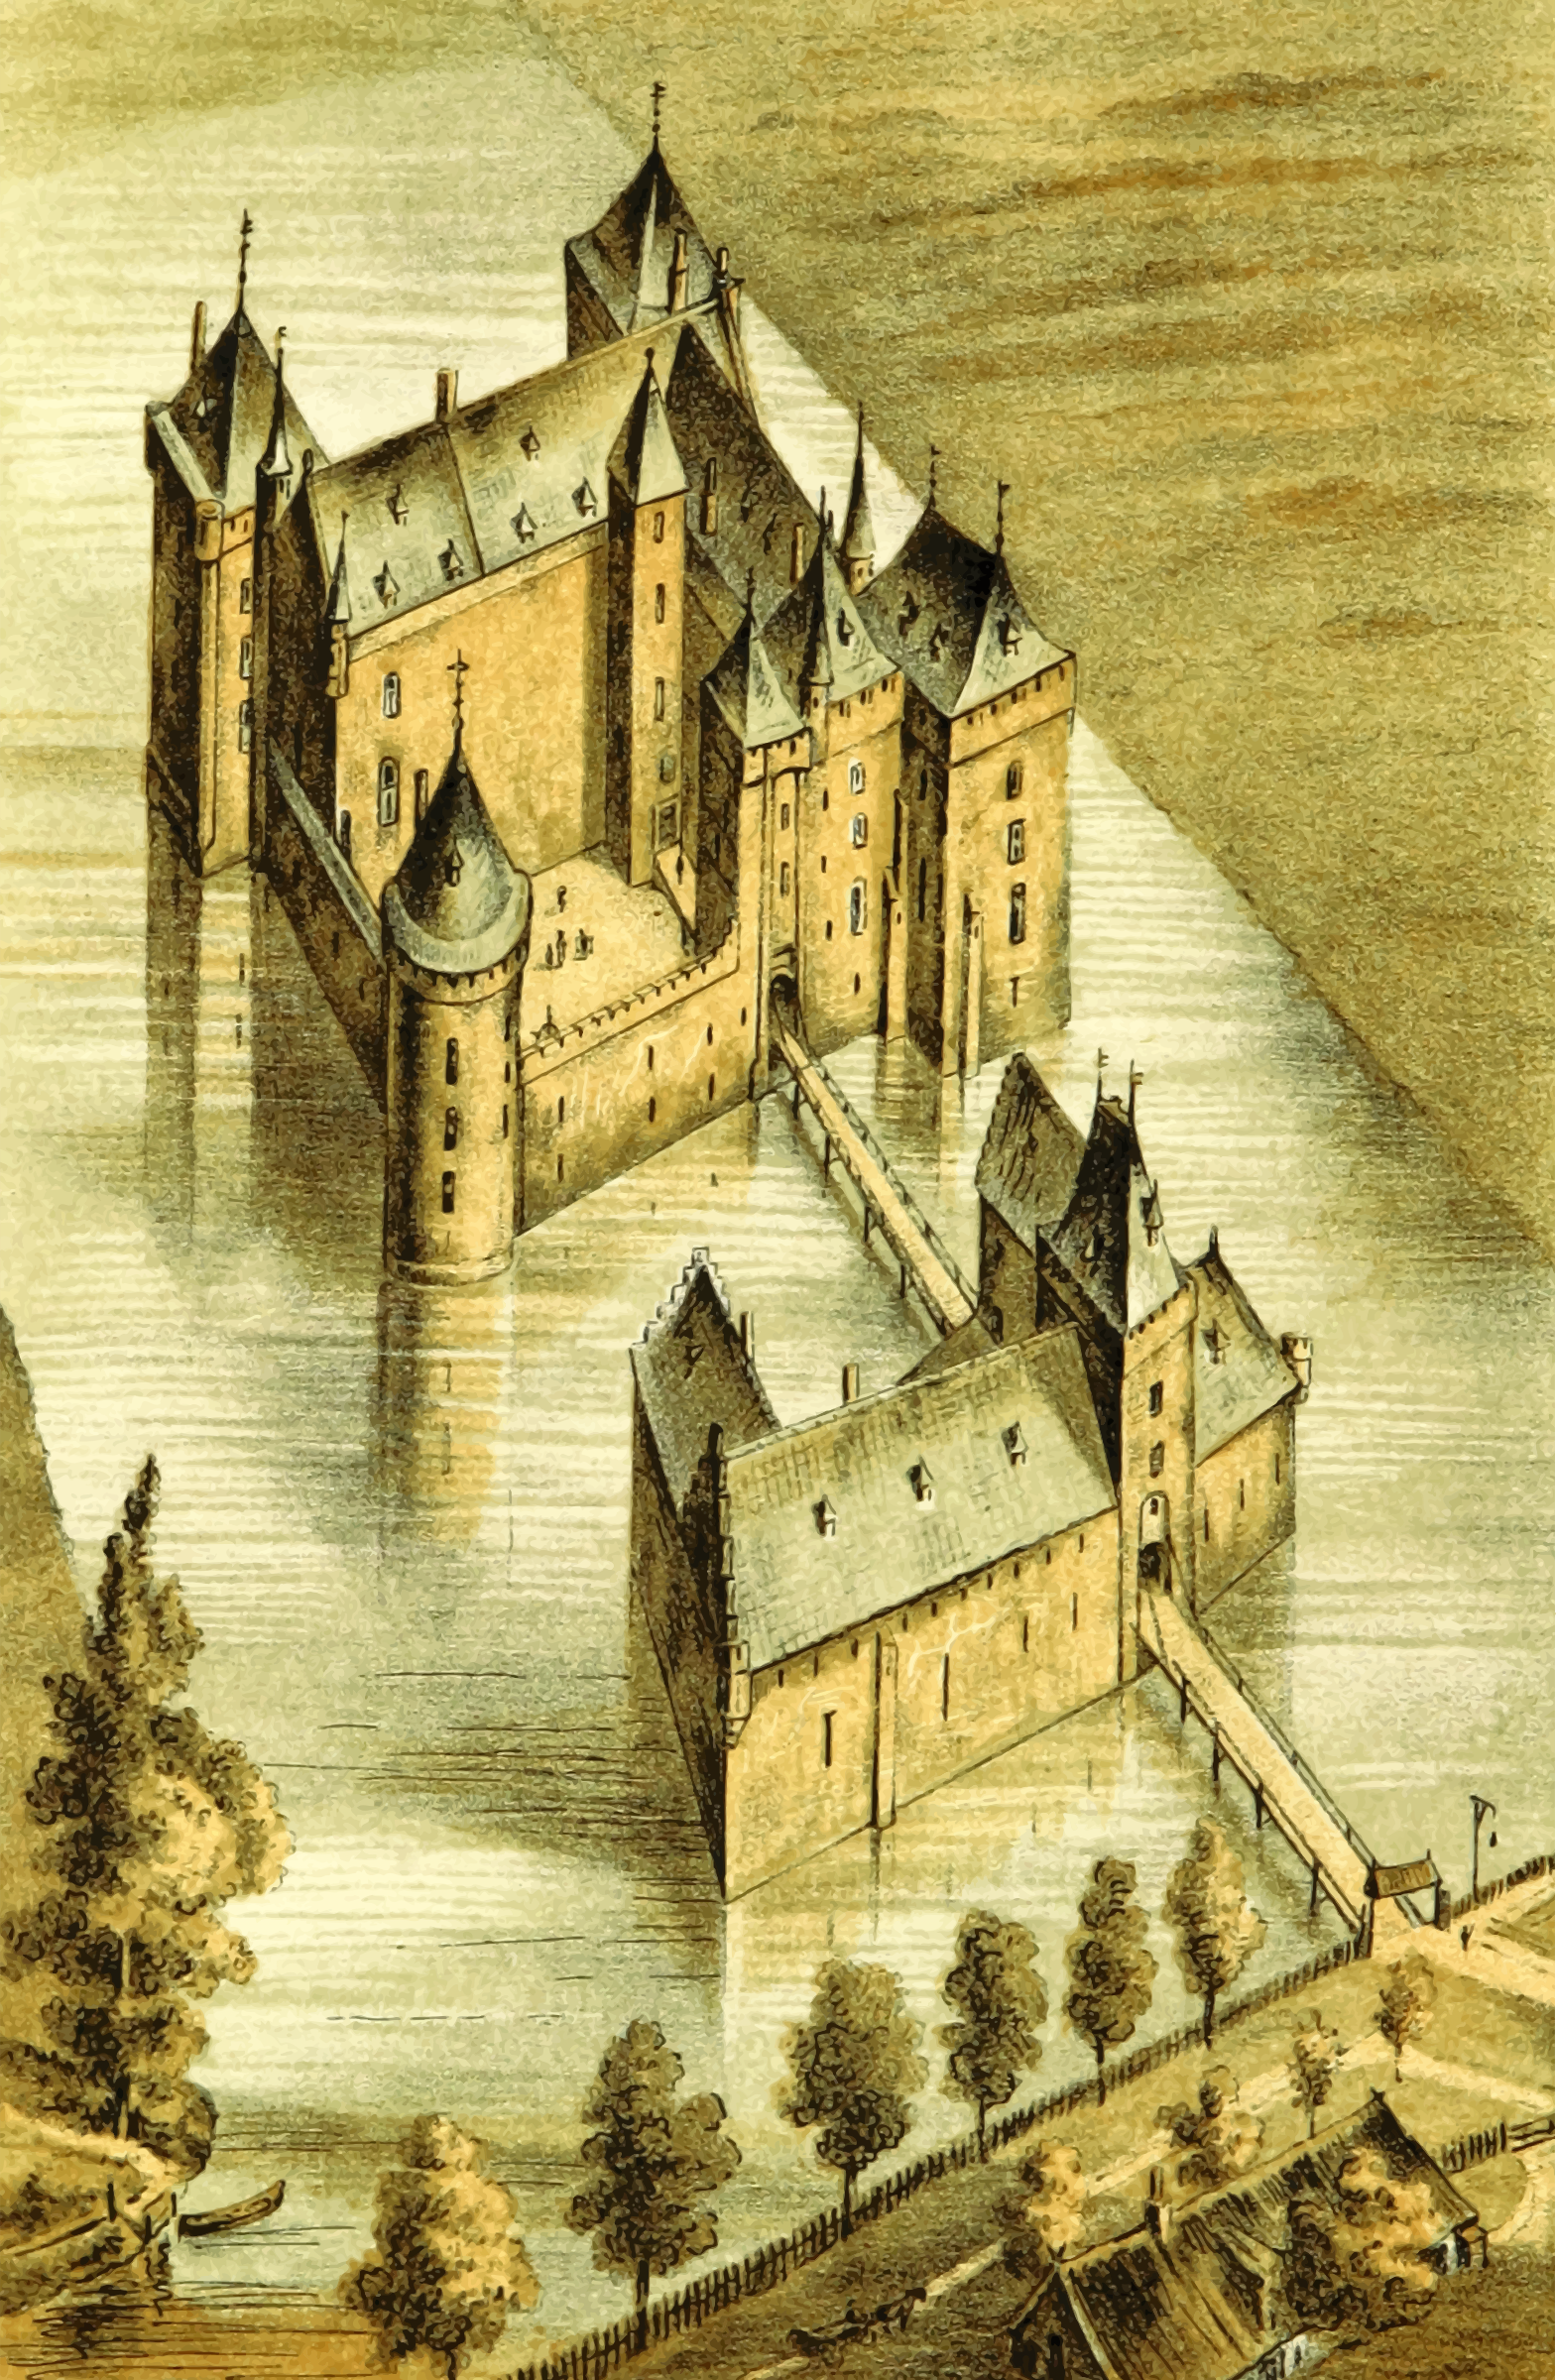 Brederode Castle by Firkin